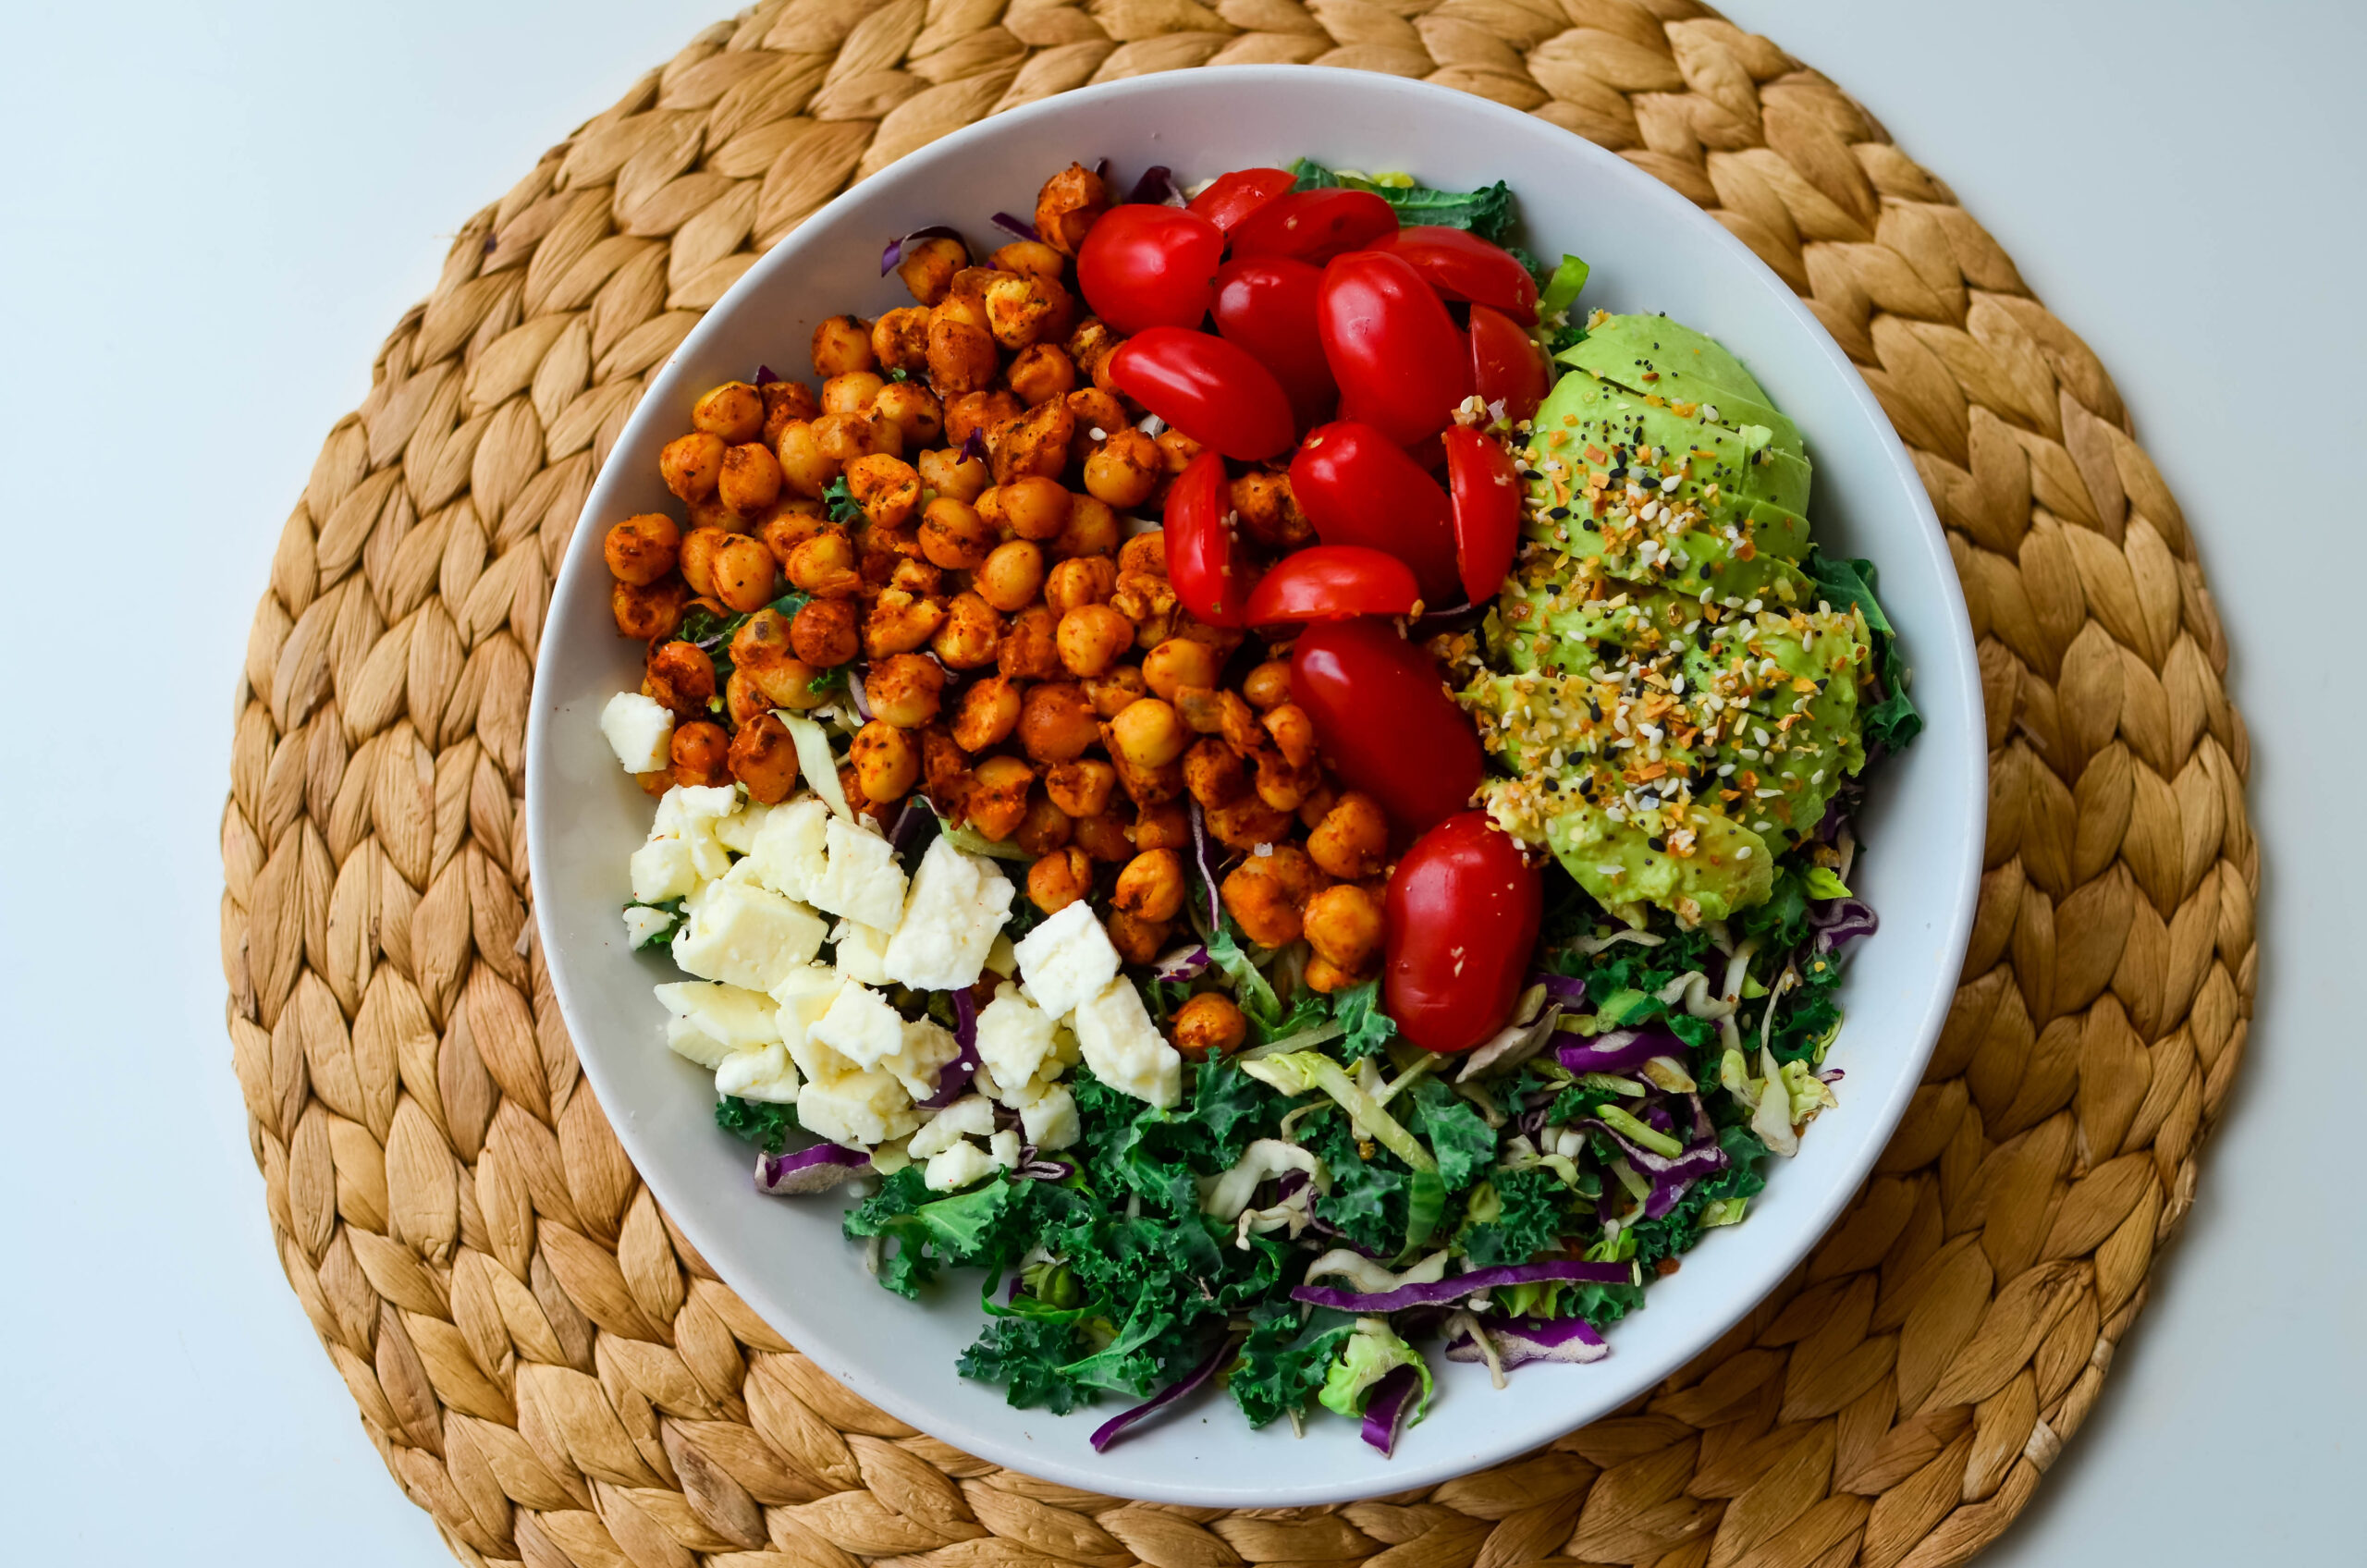 A vegetarian twist on a Cobb salad classic